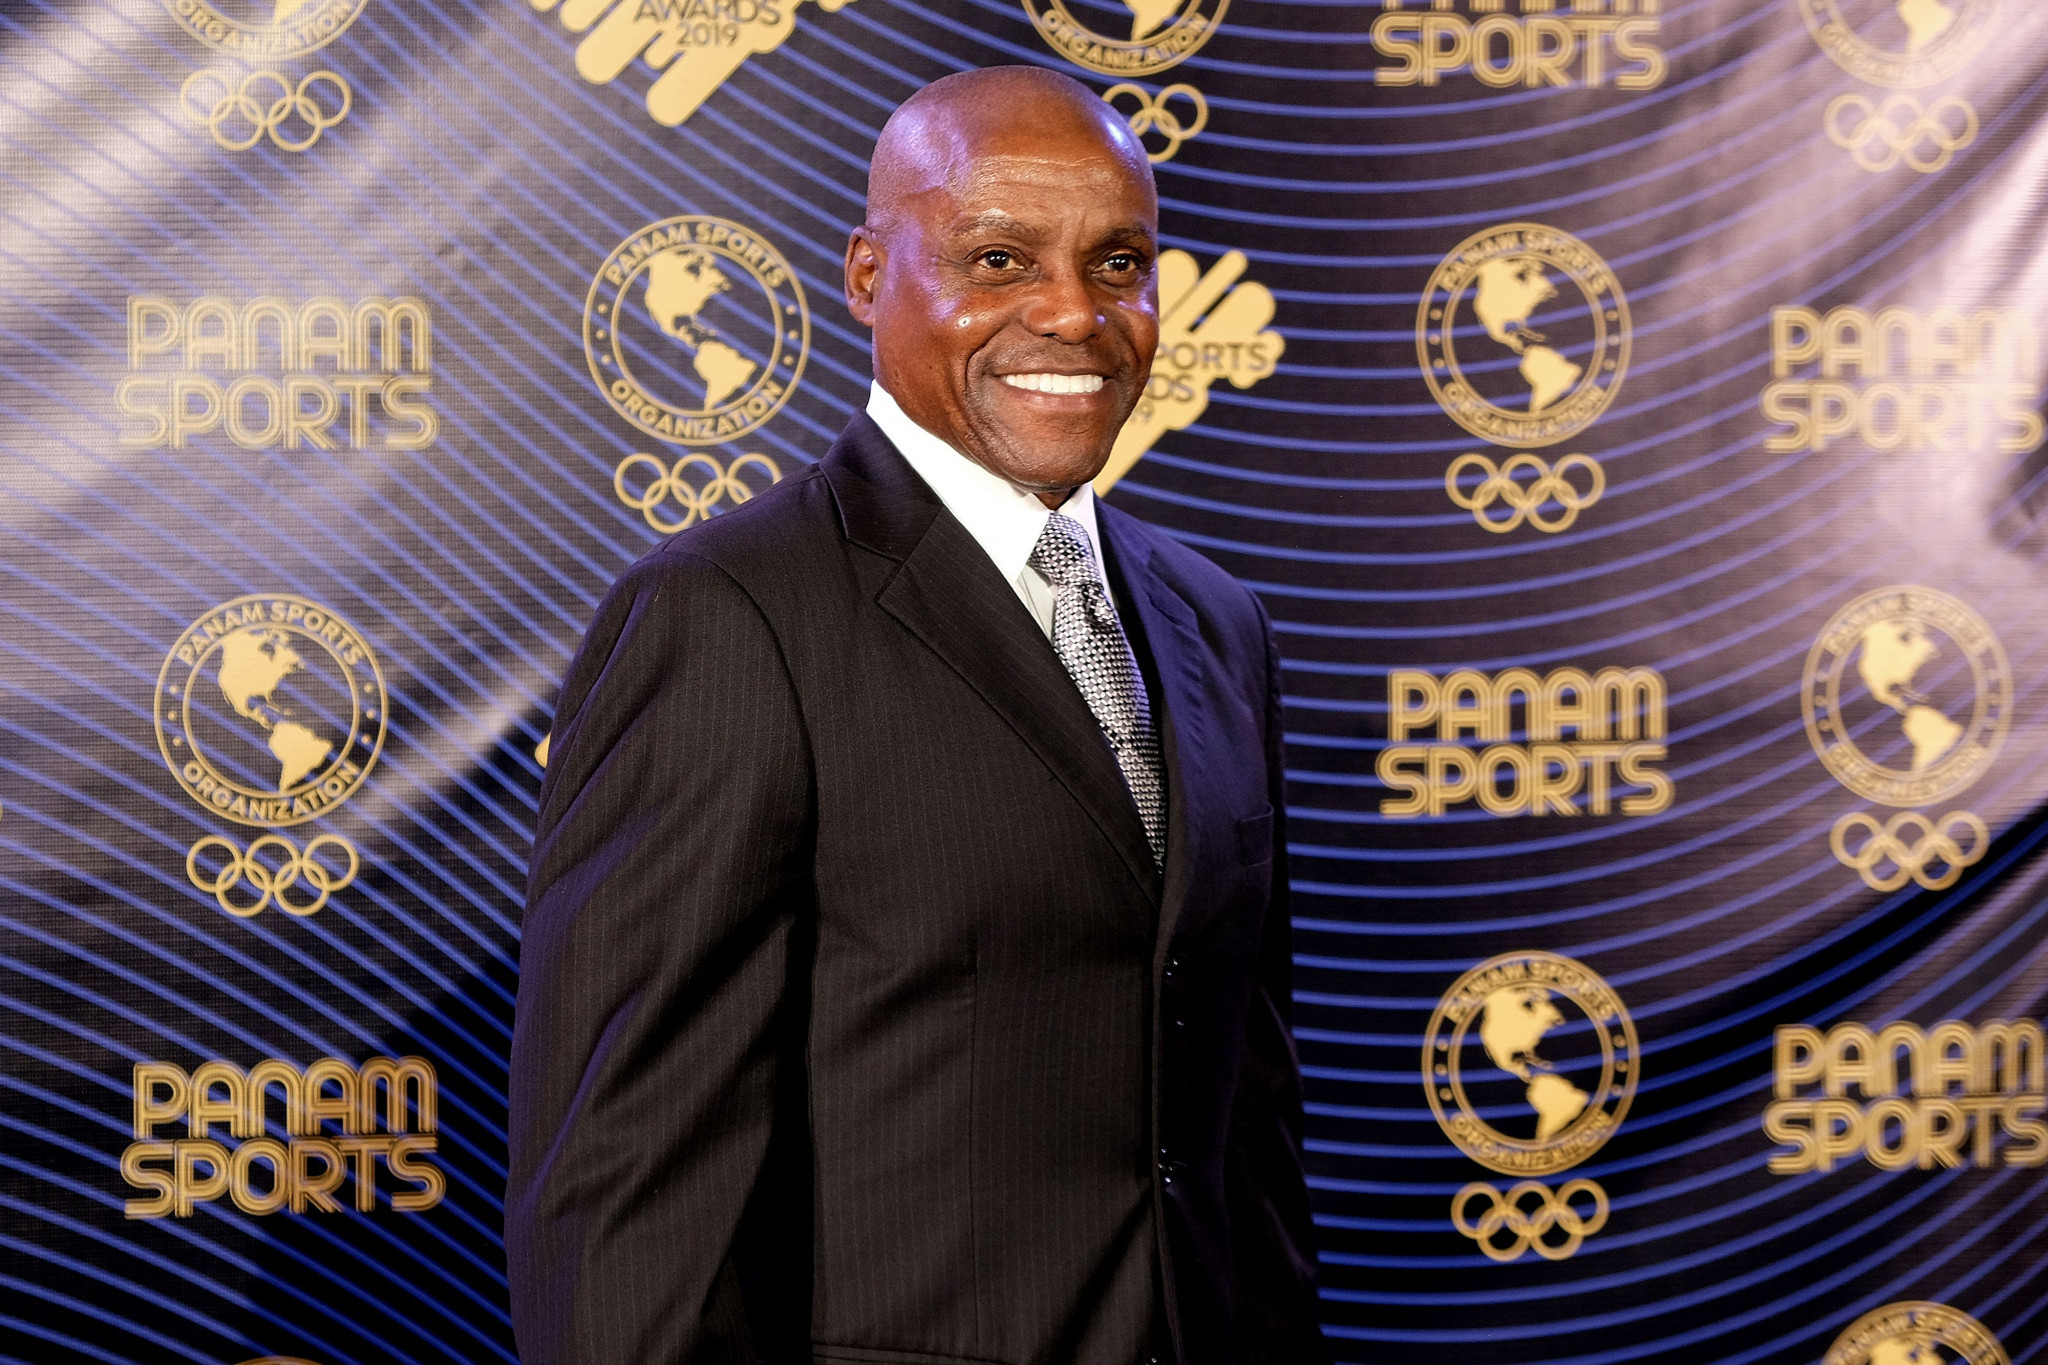 Carl Lewis received the Panam Sports Legend award ©Getty Images